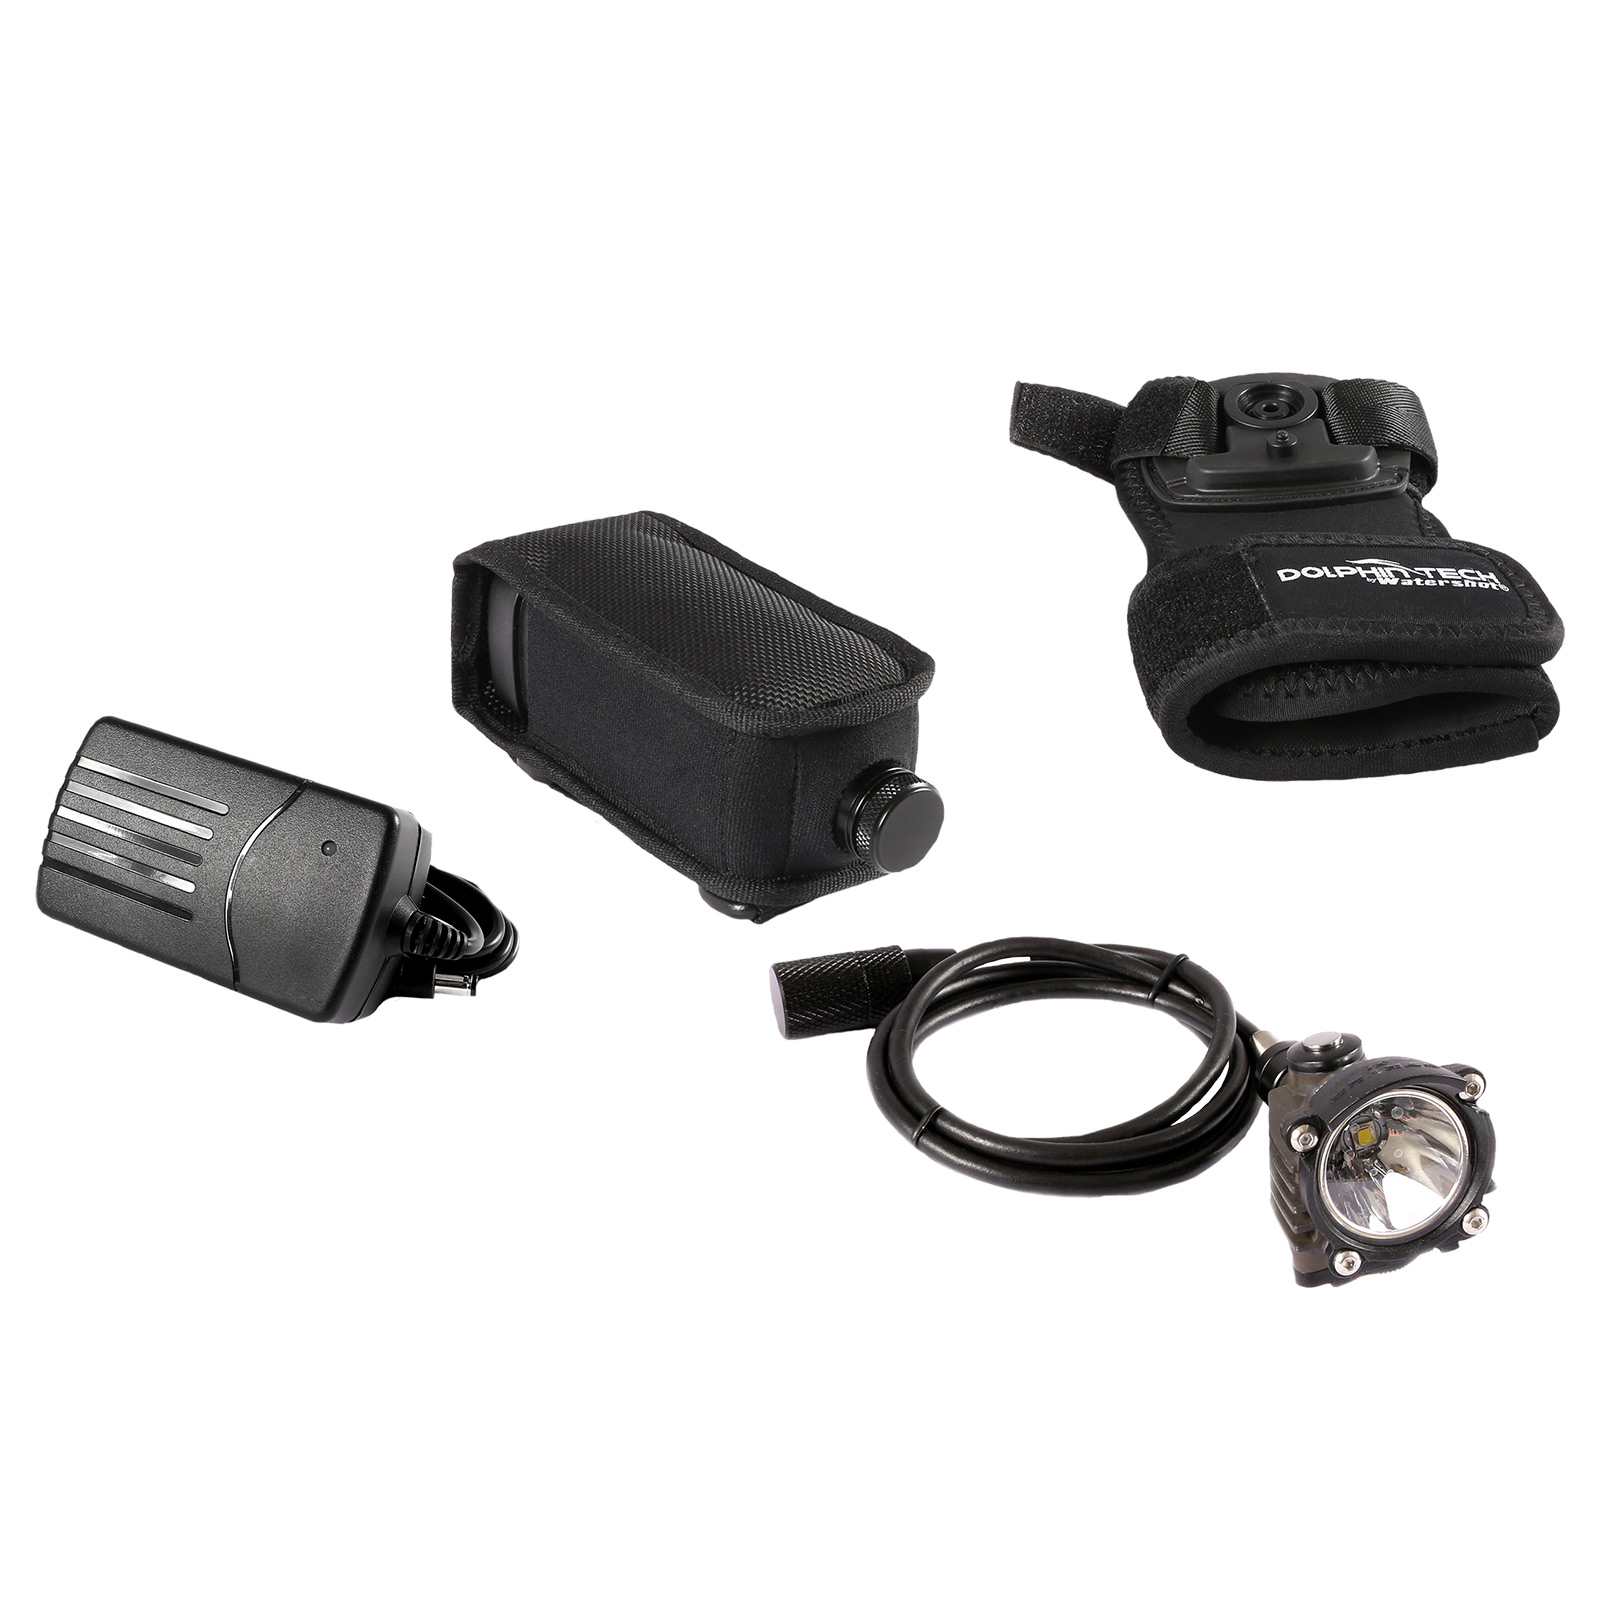 Deluxe 1000 Lumen Dive Torch